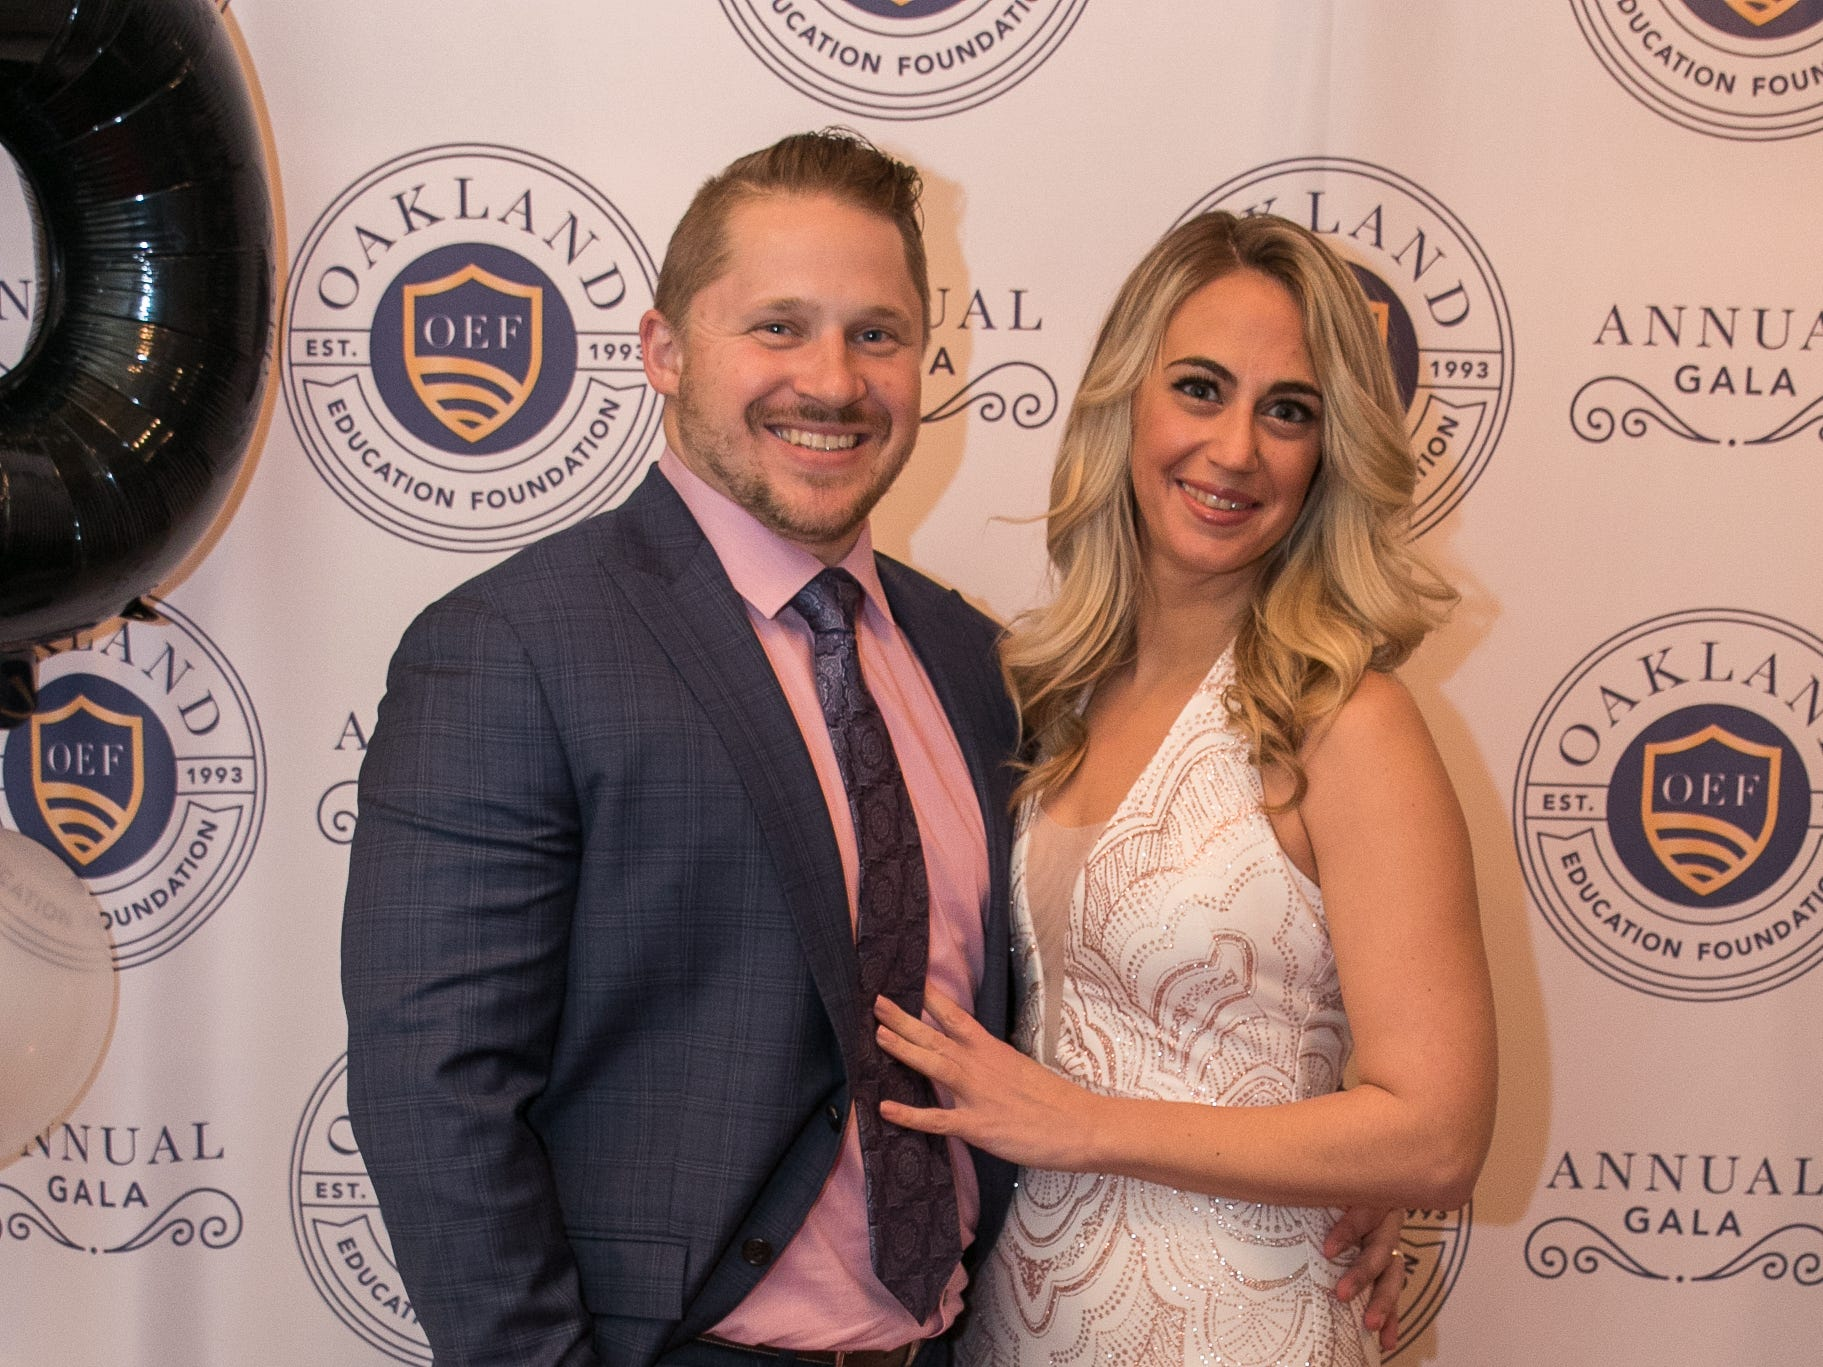 Tom and Katrina Larsen. The Oakland Education Foundation held their 25th Anniversary Casino Night Gala at Preakness Hills Country Club in Wayne. 03/16/2019